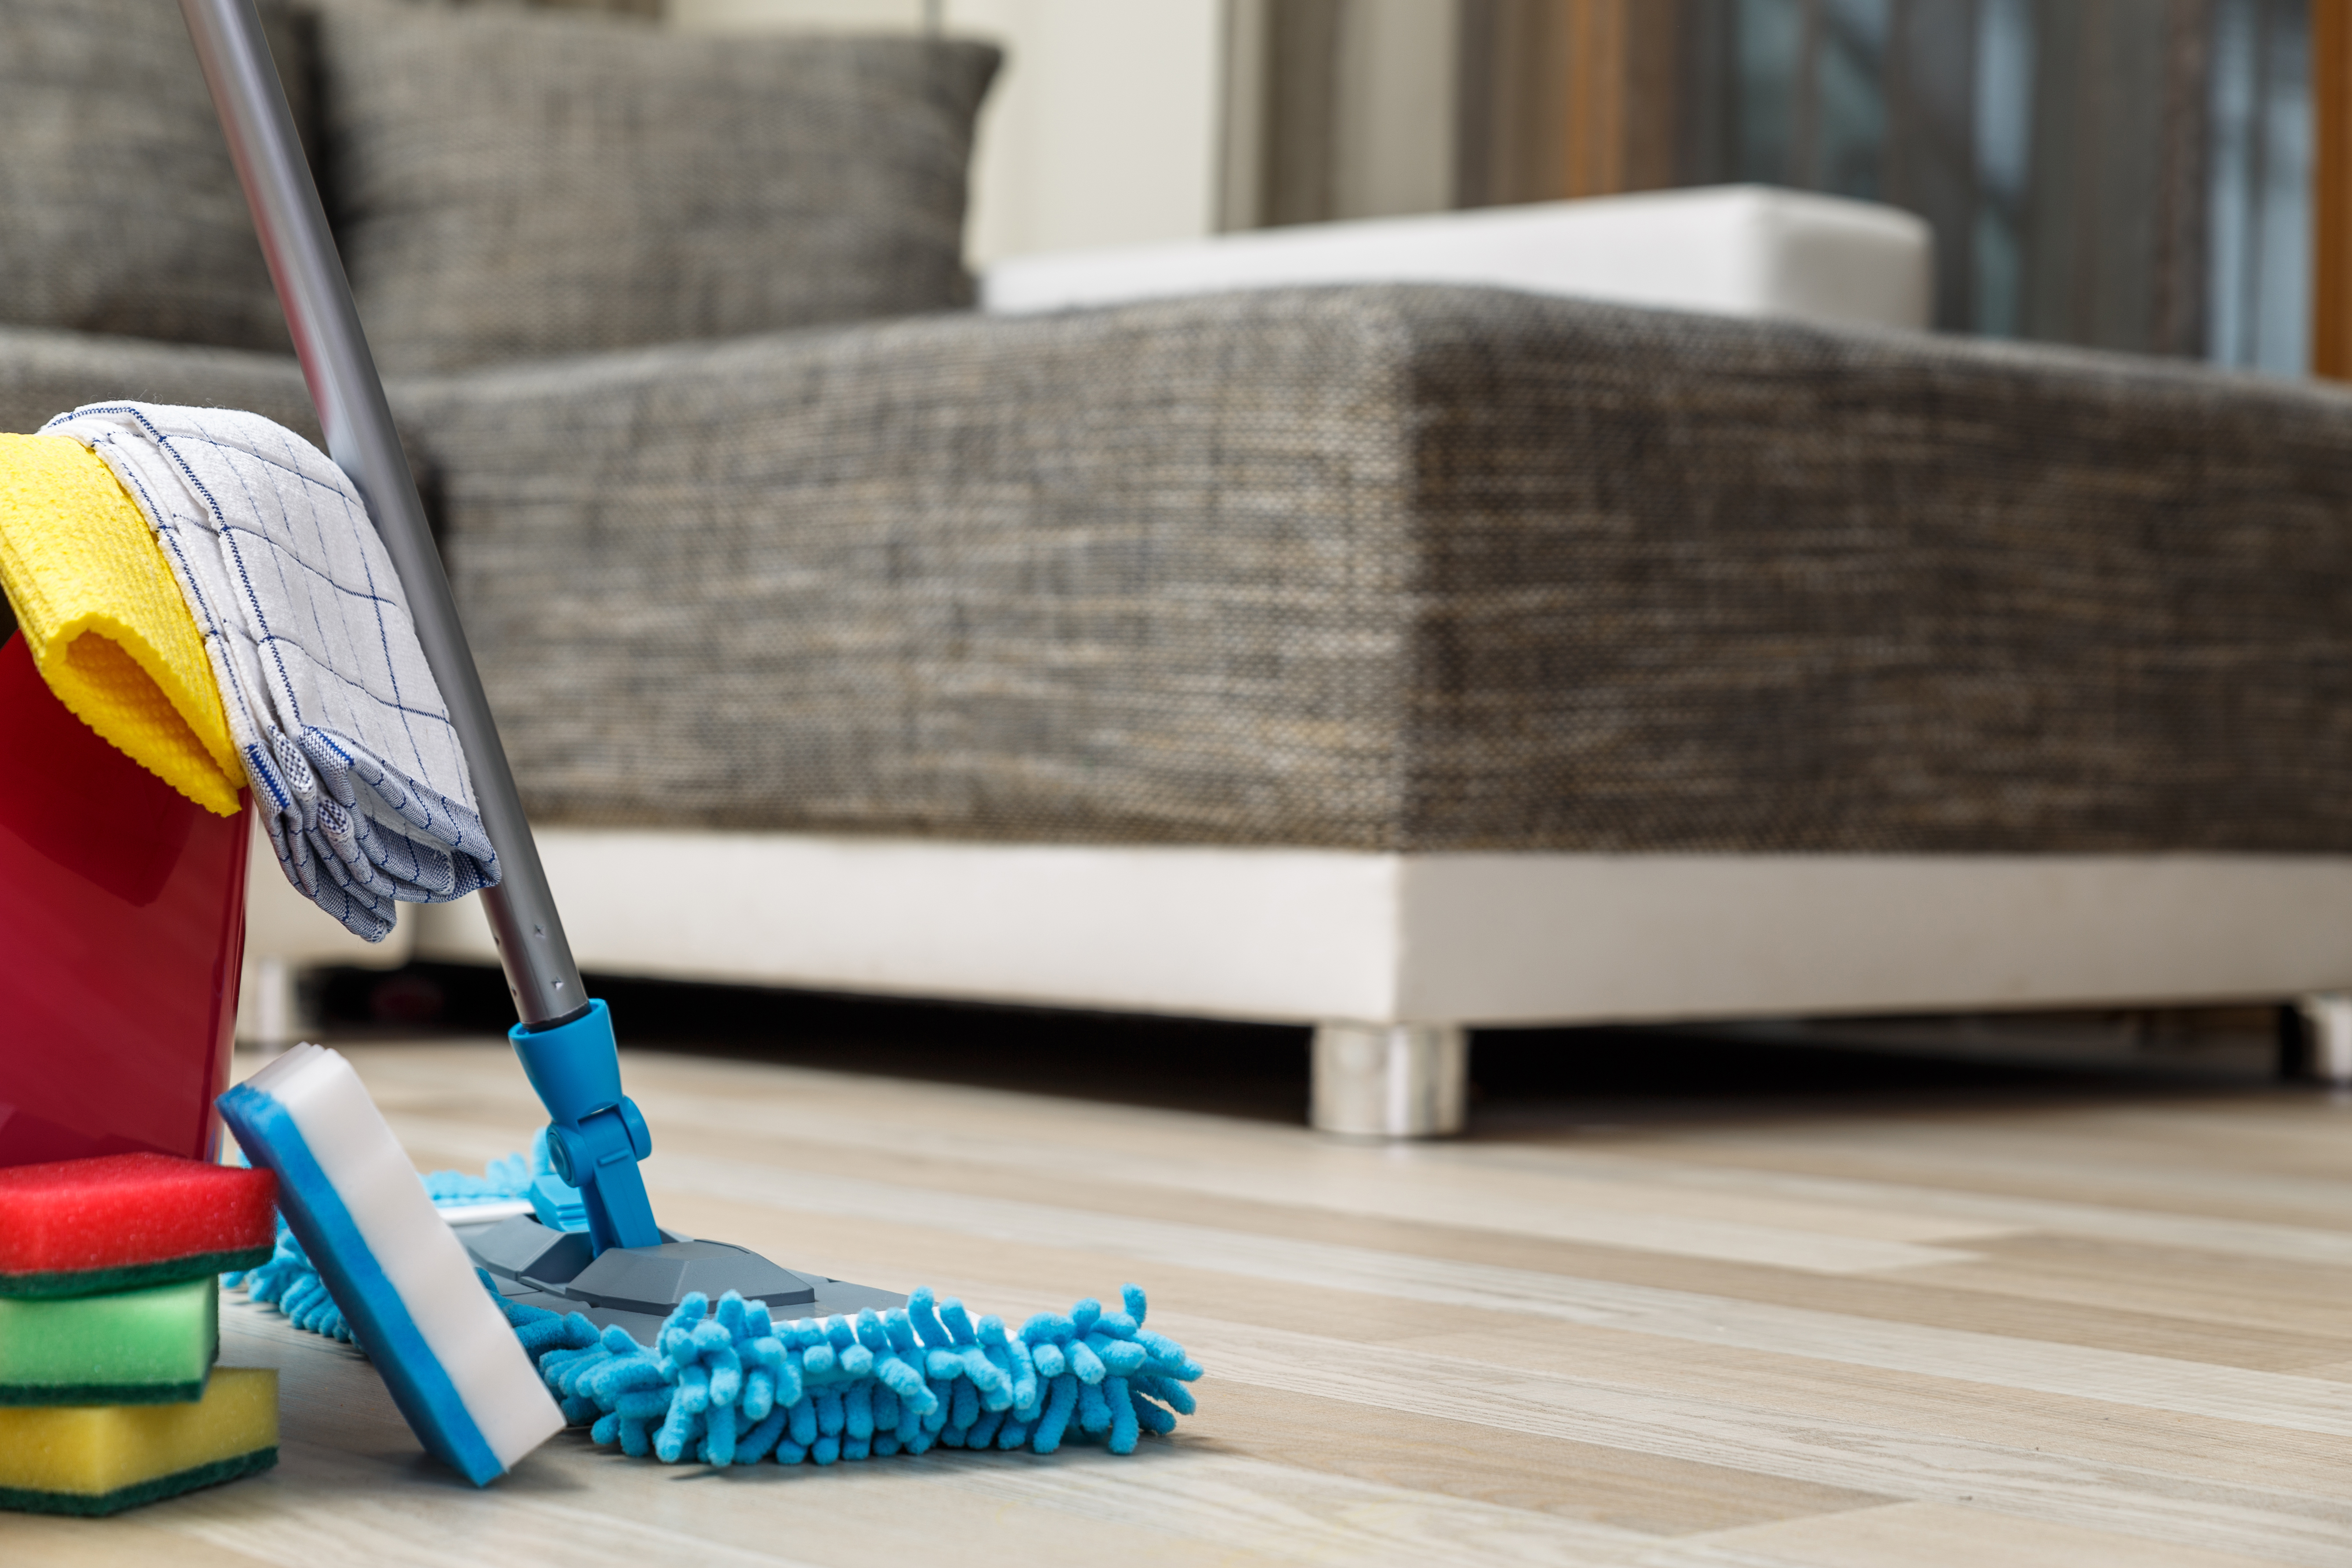 #TUESDAYTIPS - TOP 10 HOUSEHOLD CLEANING HACKS